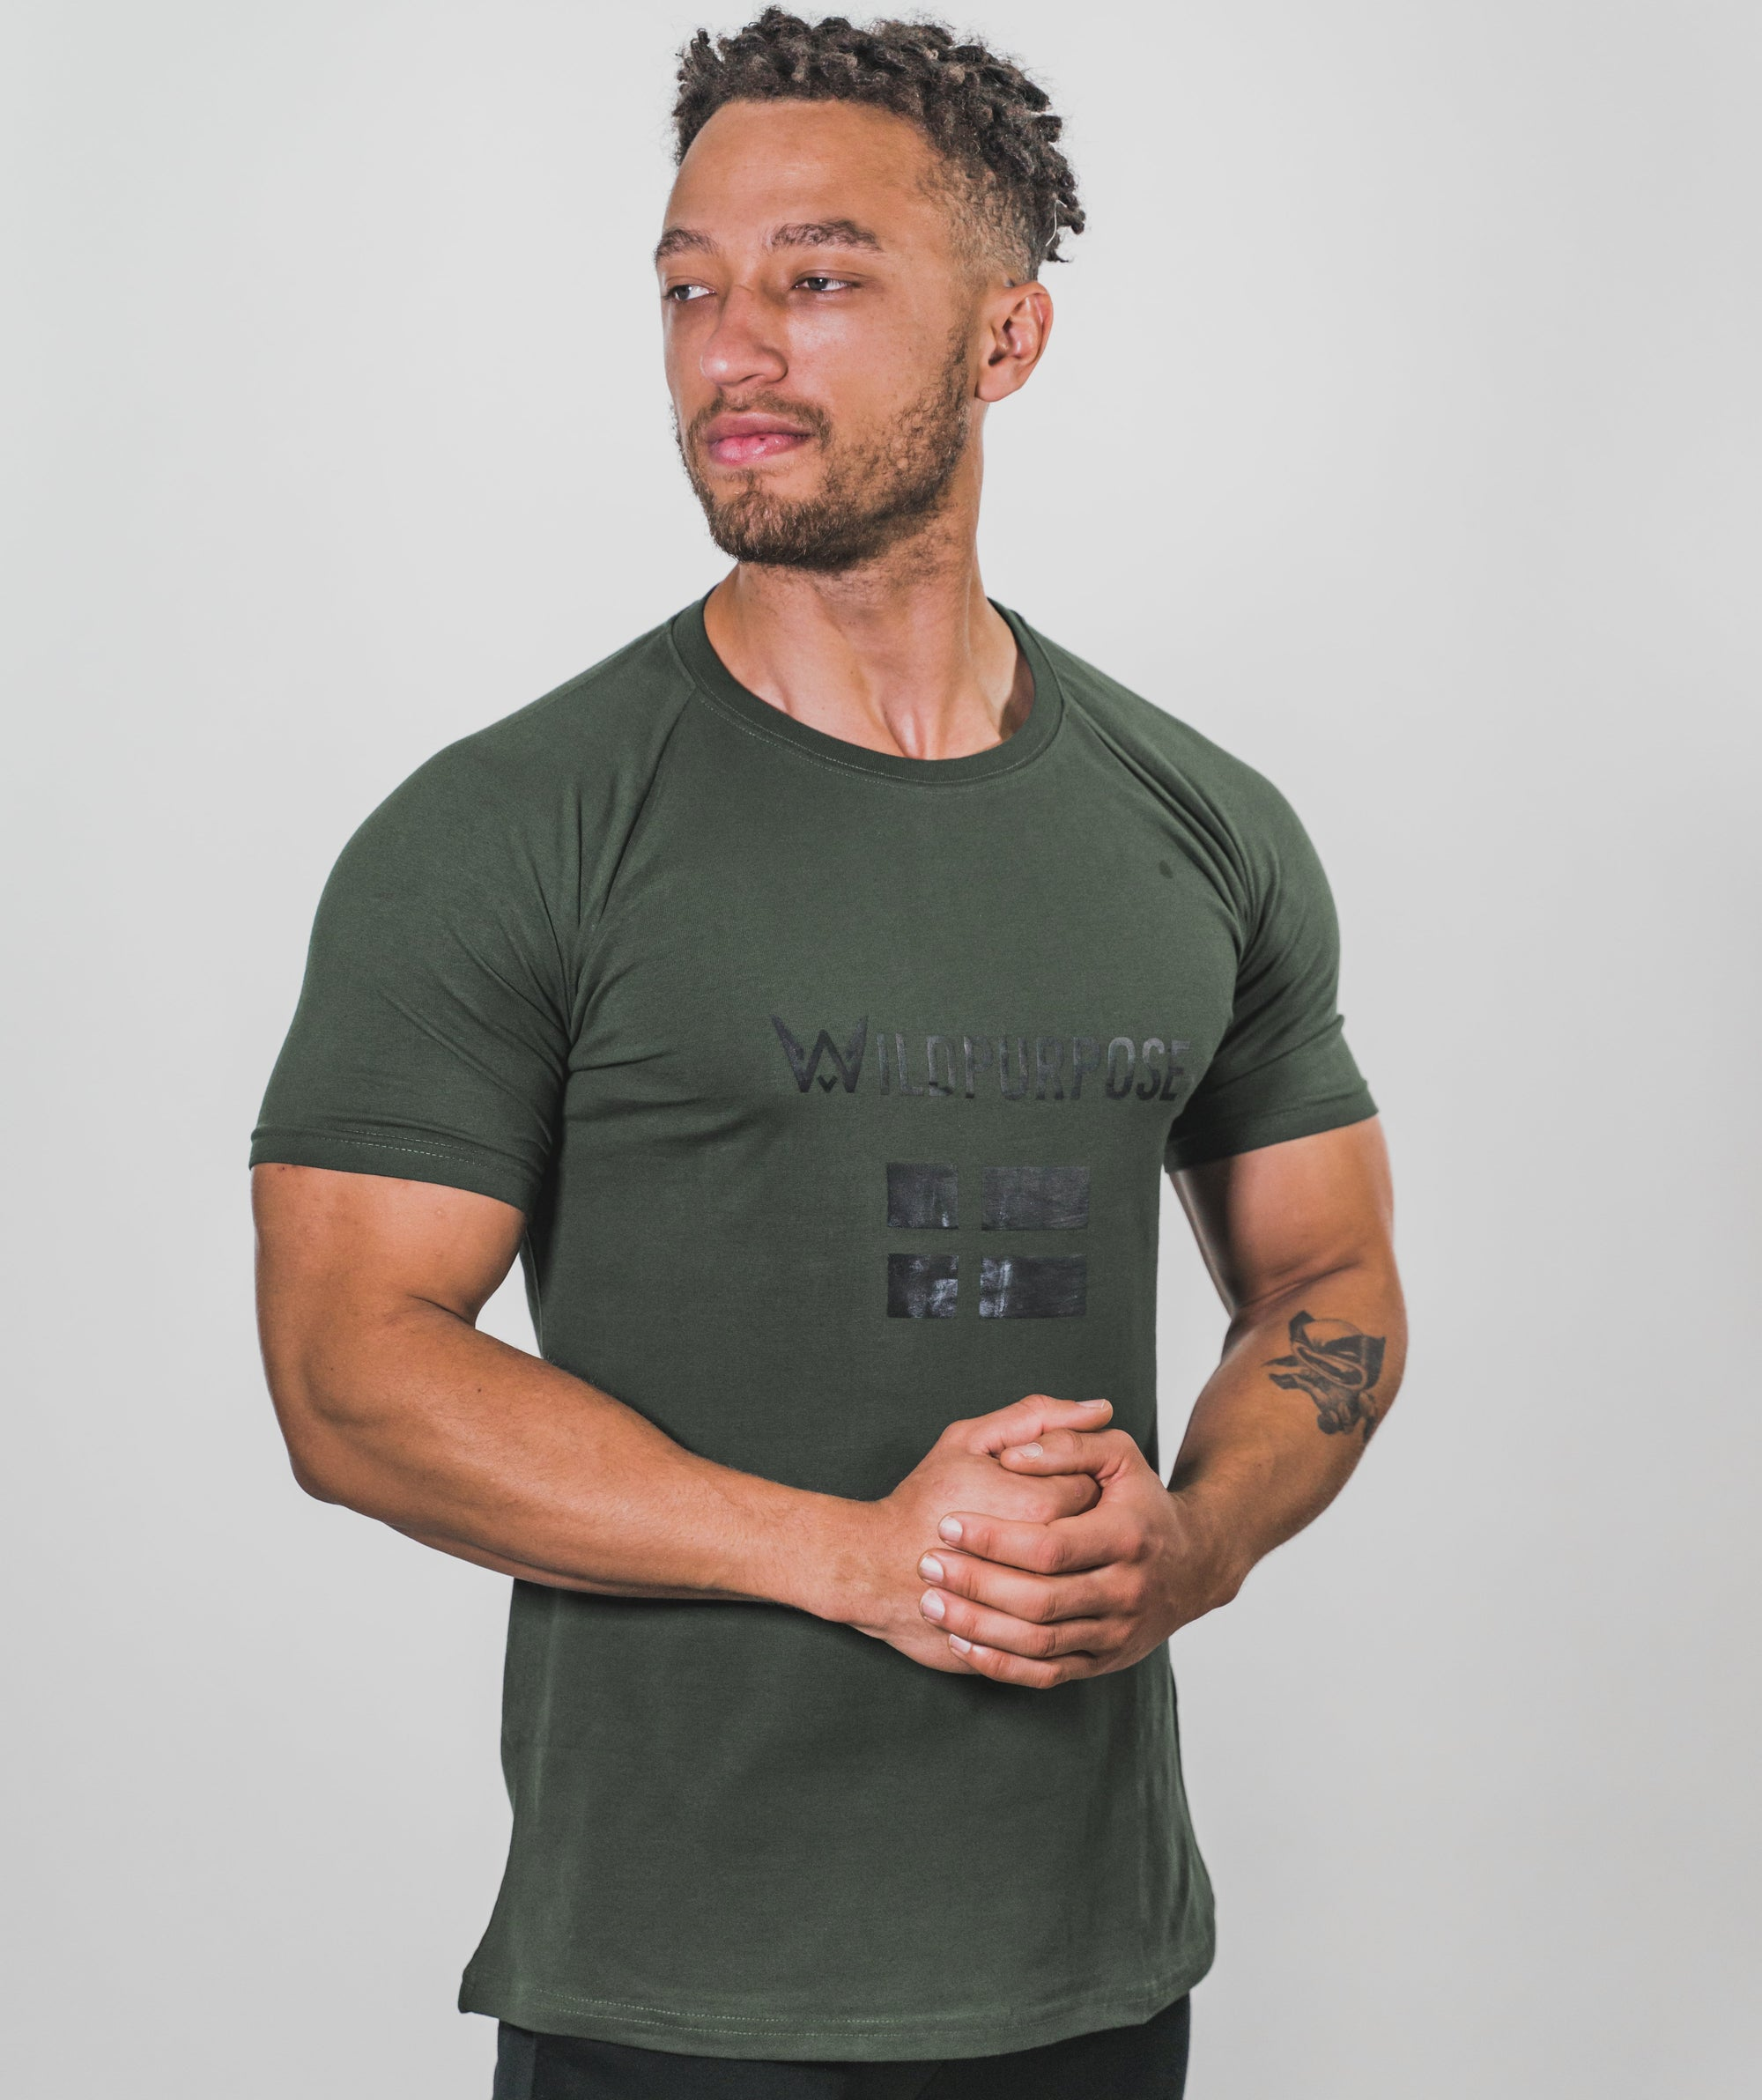 FATALITY Performance Shirt | Svea